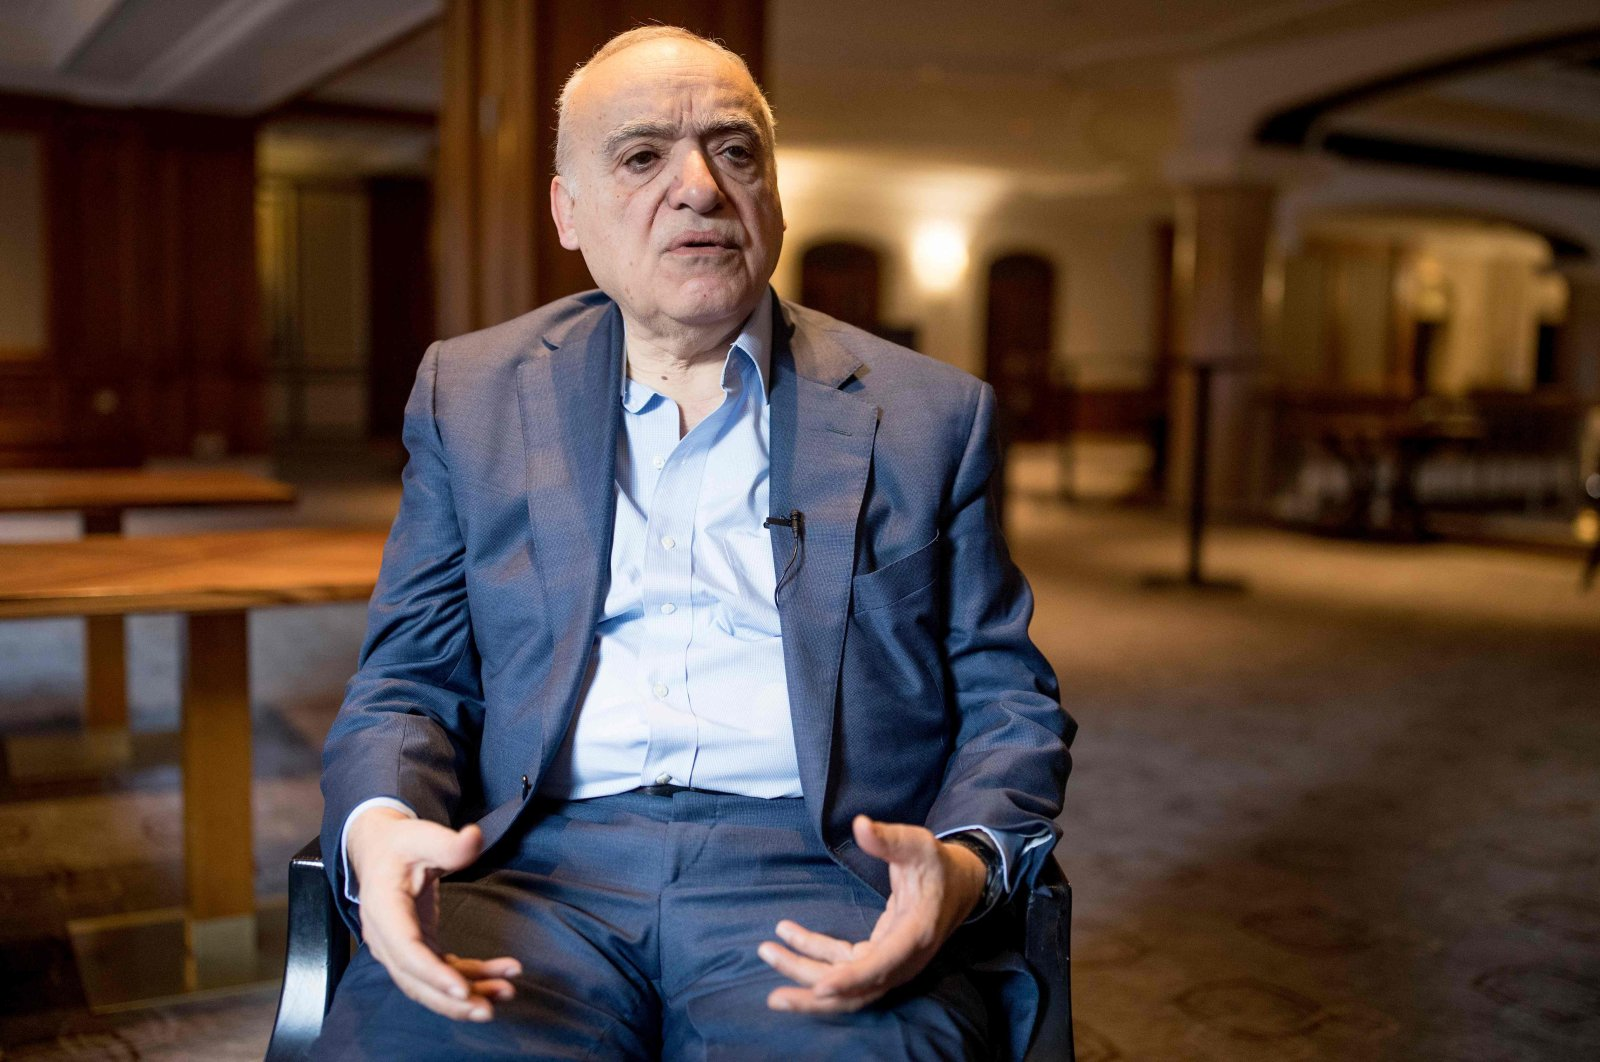 Ghassan Salame, the United Nations' former Libya envoy, speaks during an interview in Berlin, January 18, 2020. (AFP Photo)